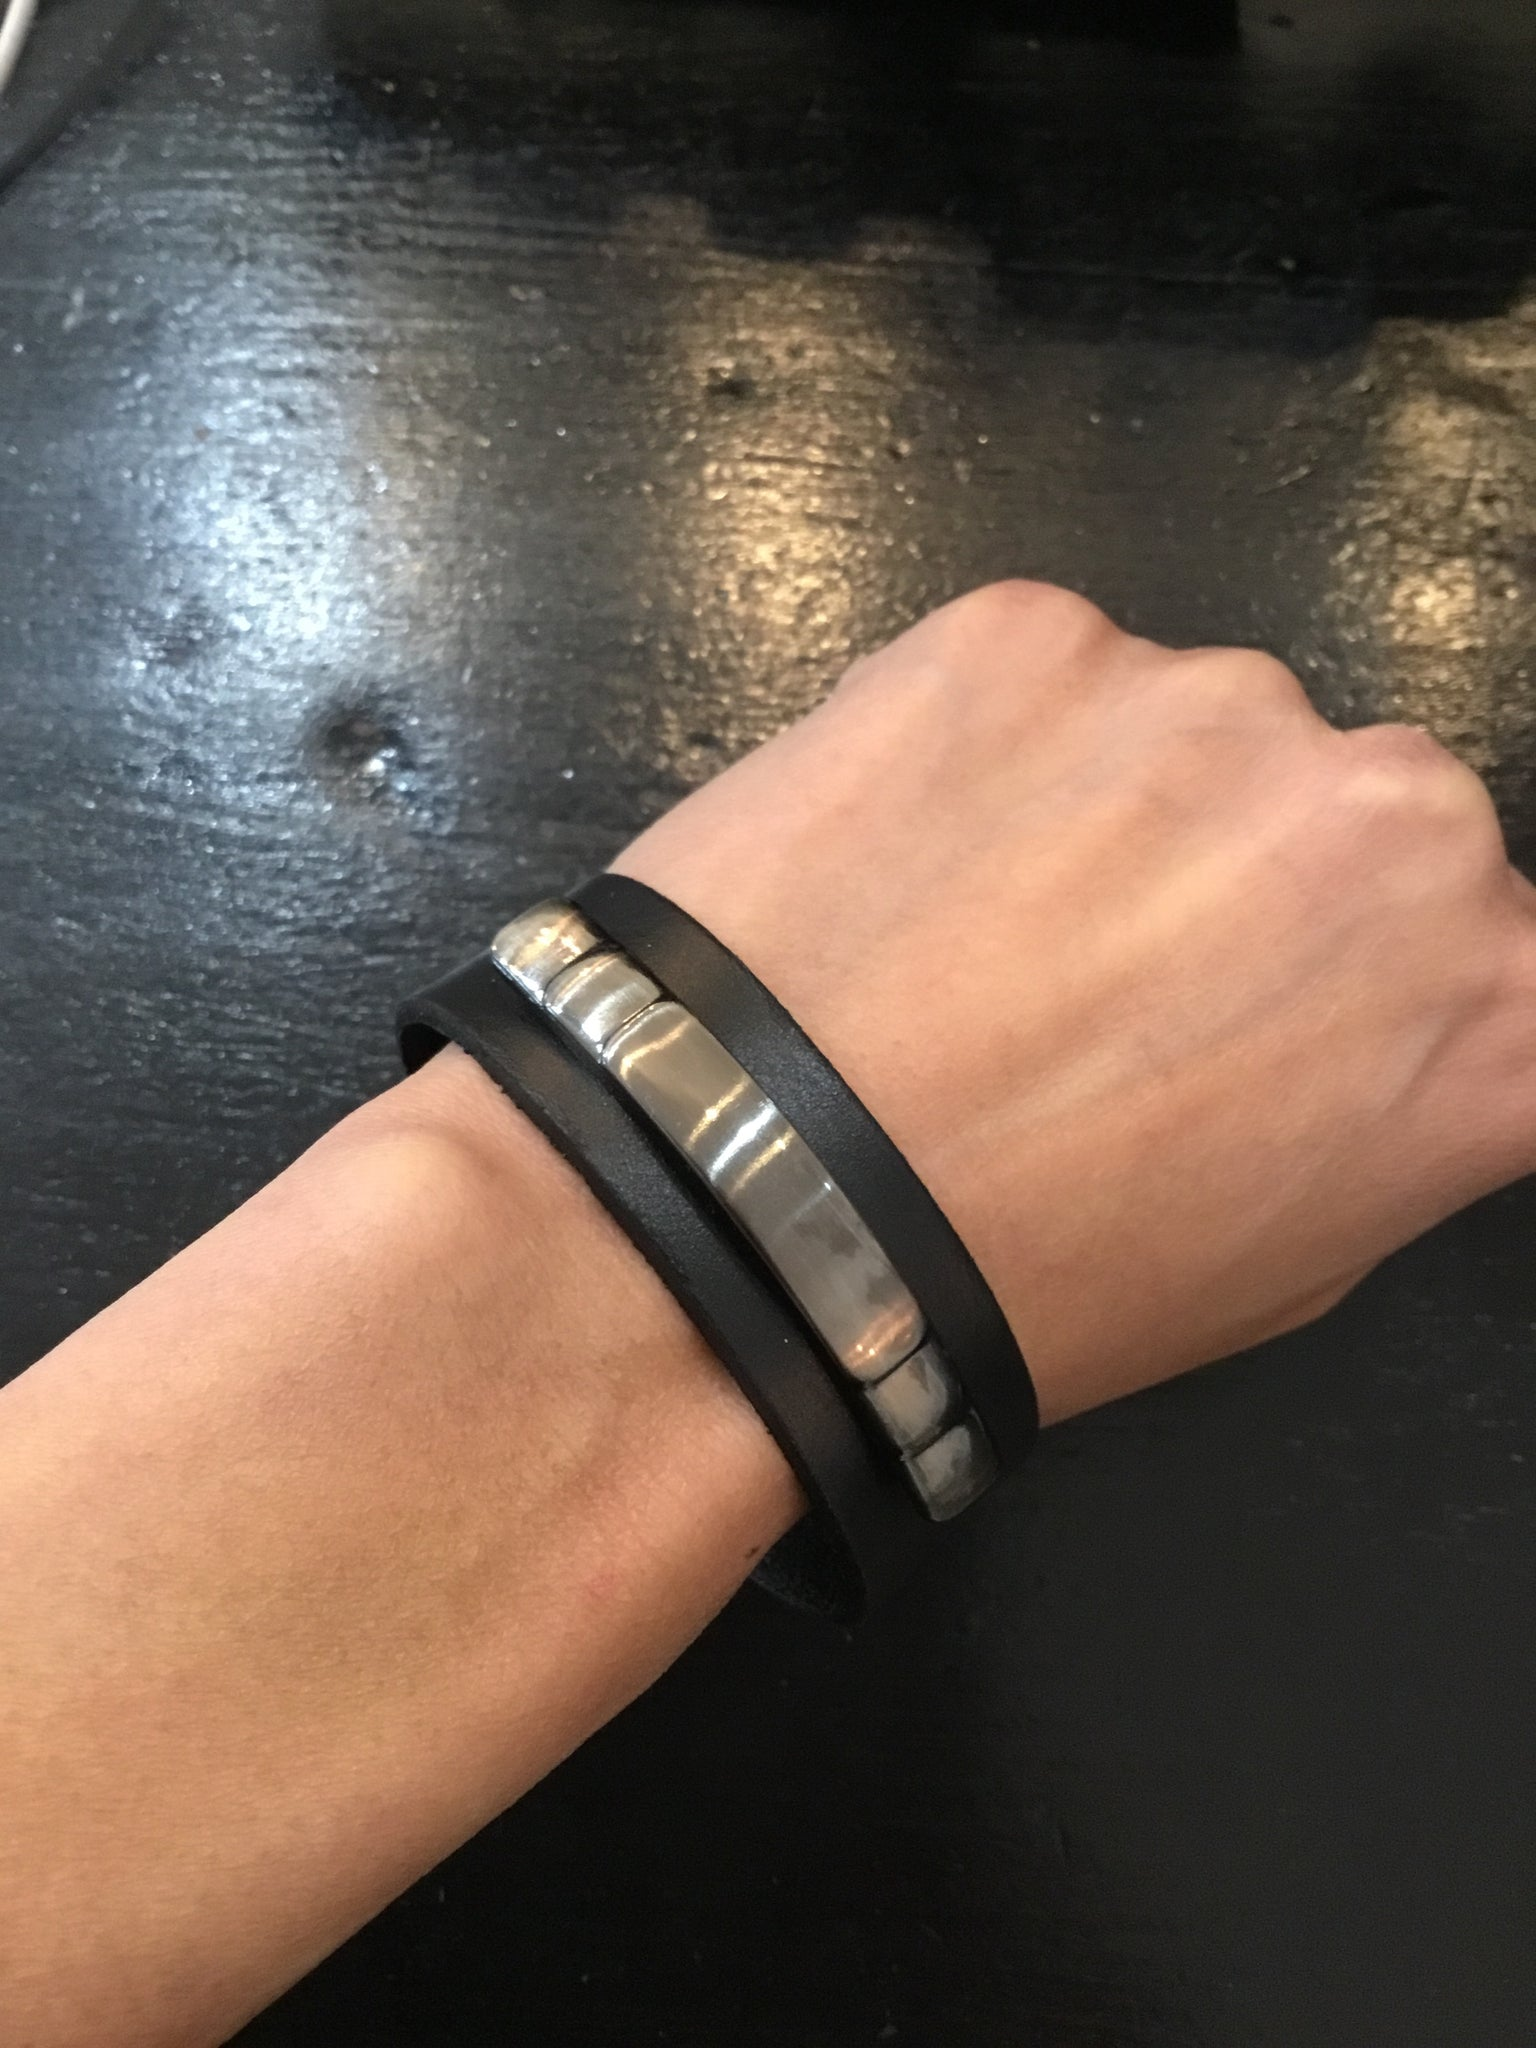 Handmade leather bracelet with metal accents